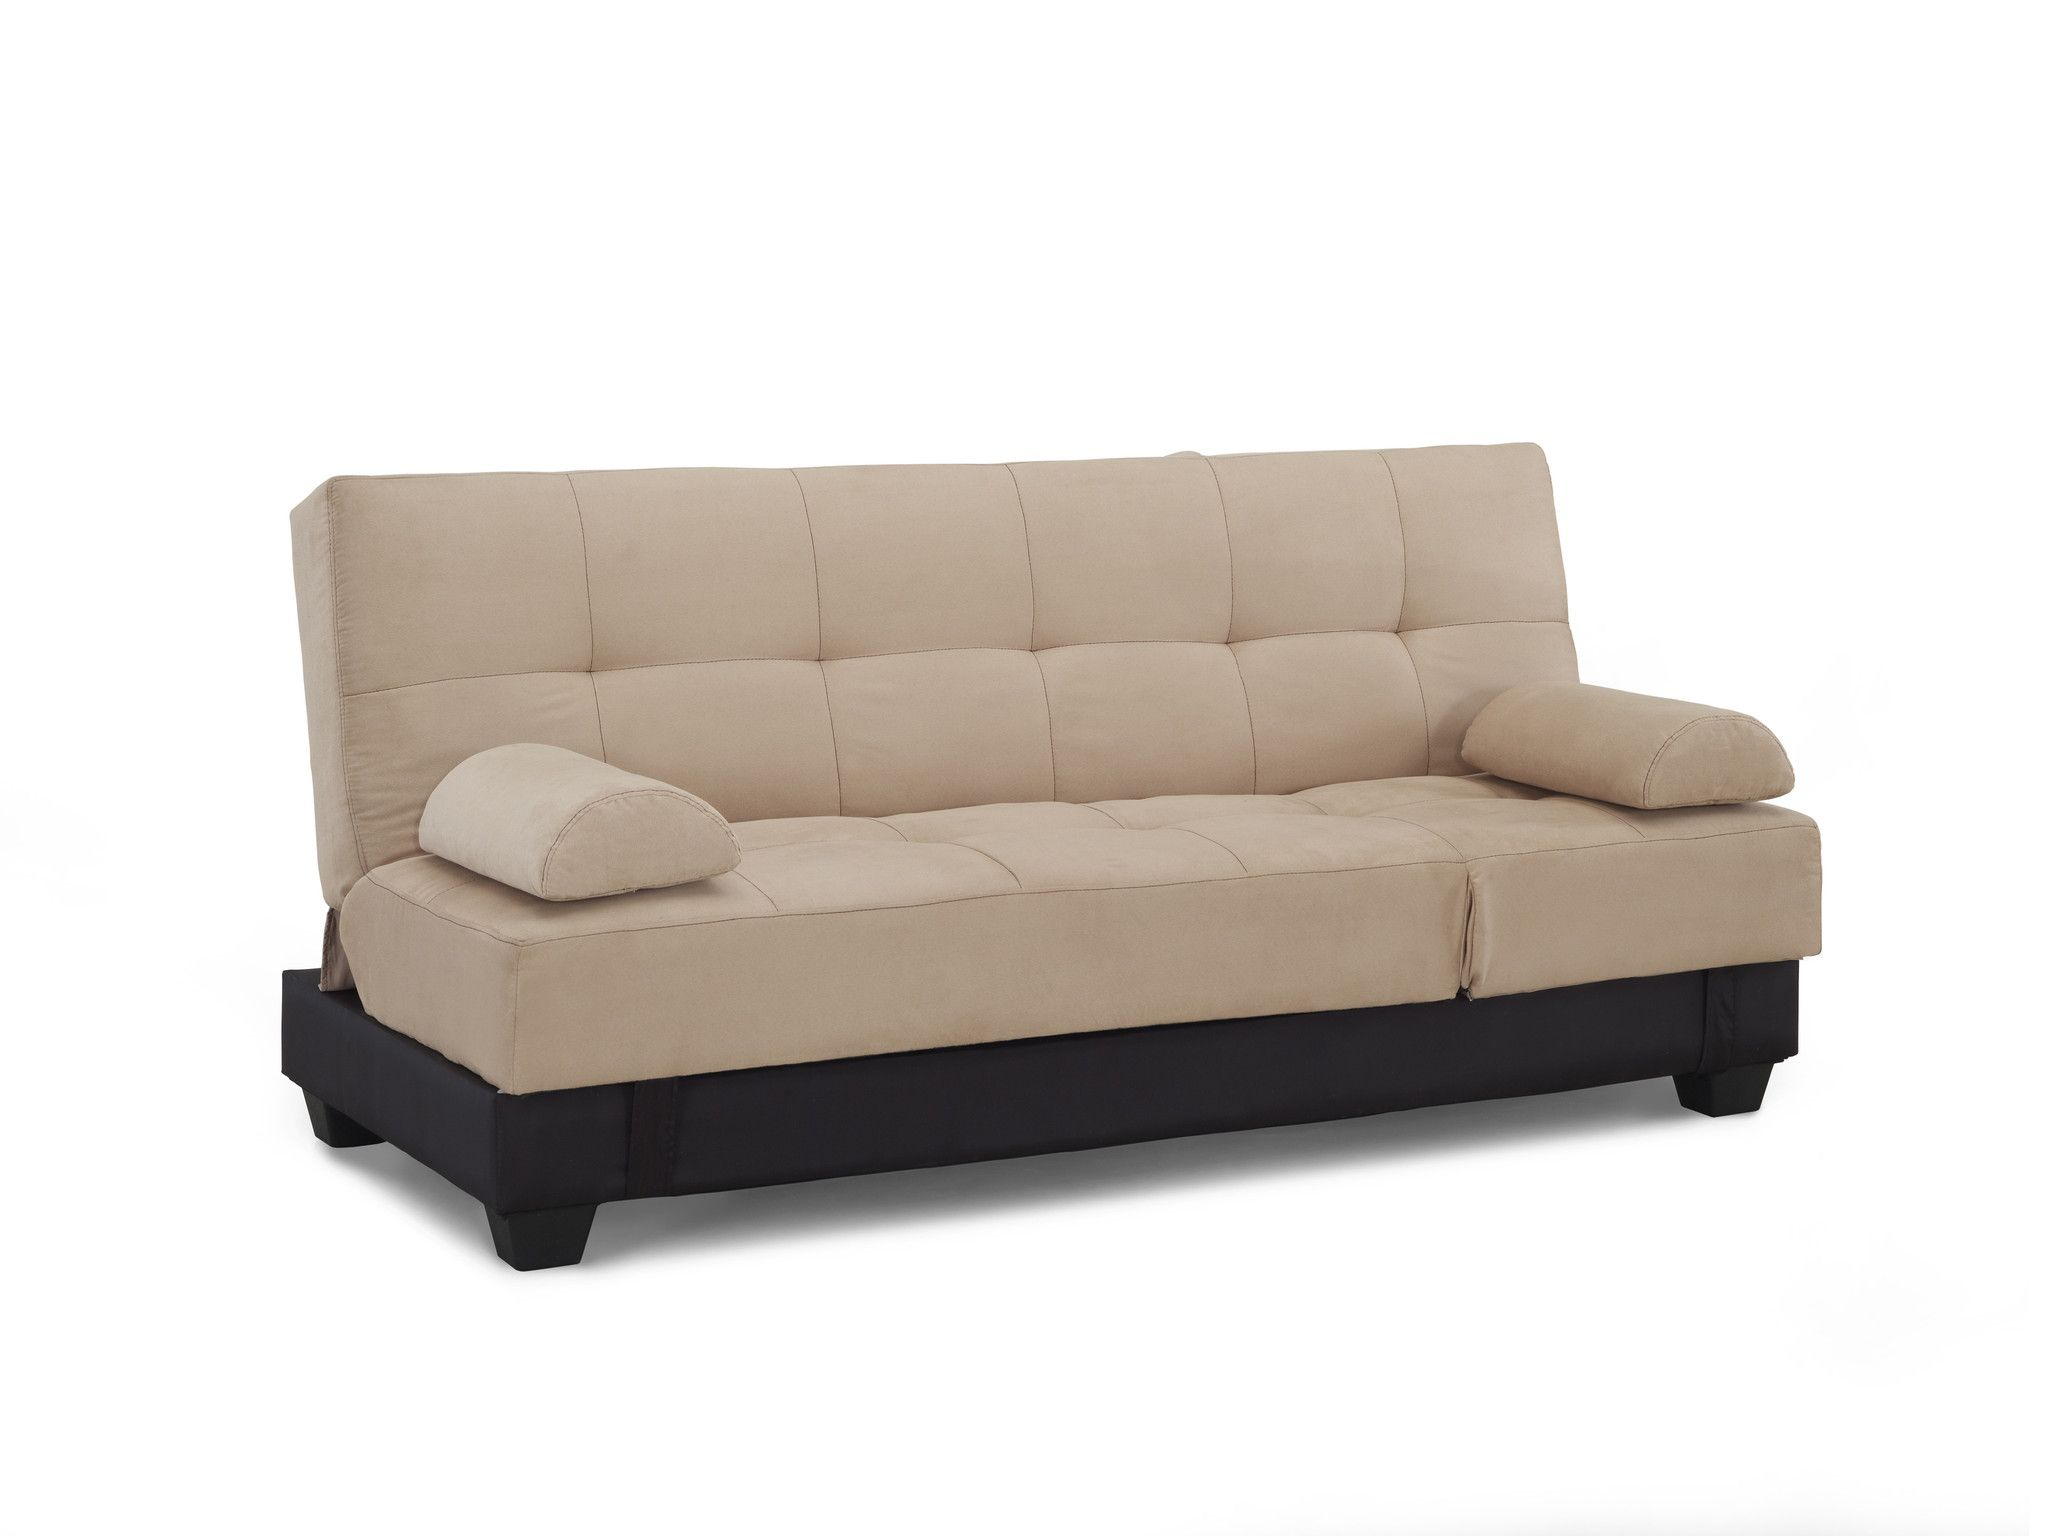 Serta Dream Convertible Harvard Sofa Khaki